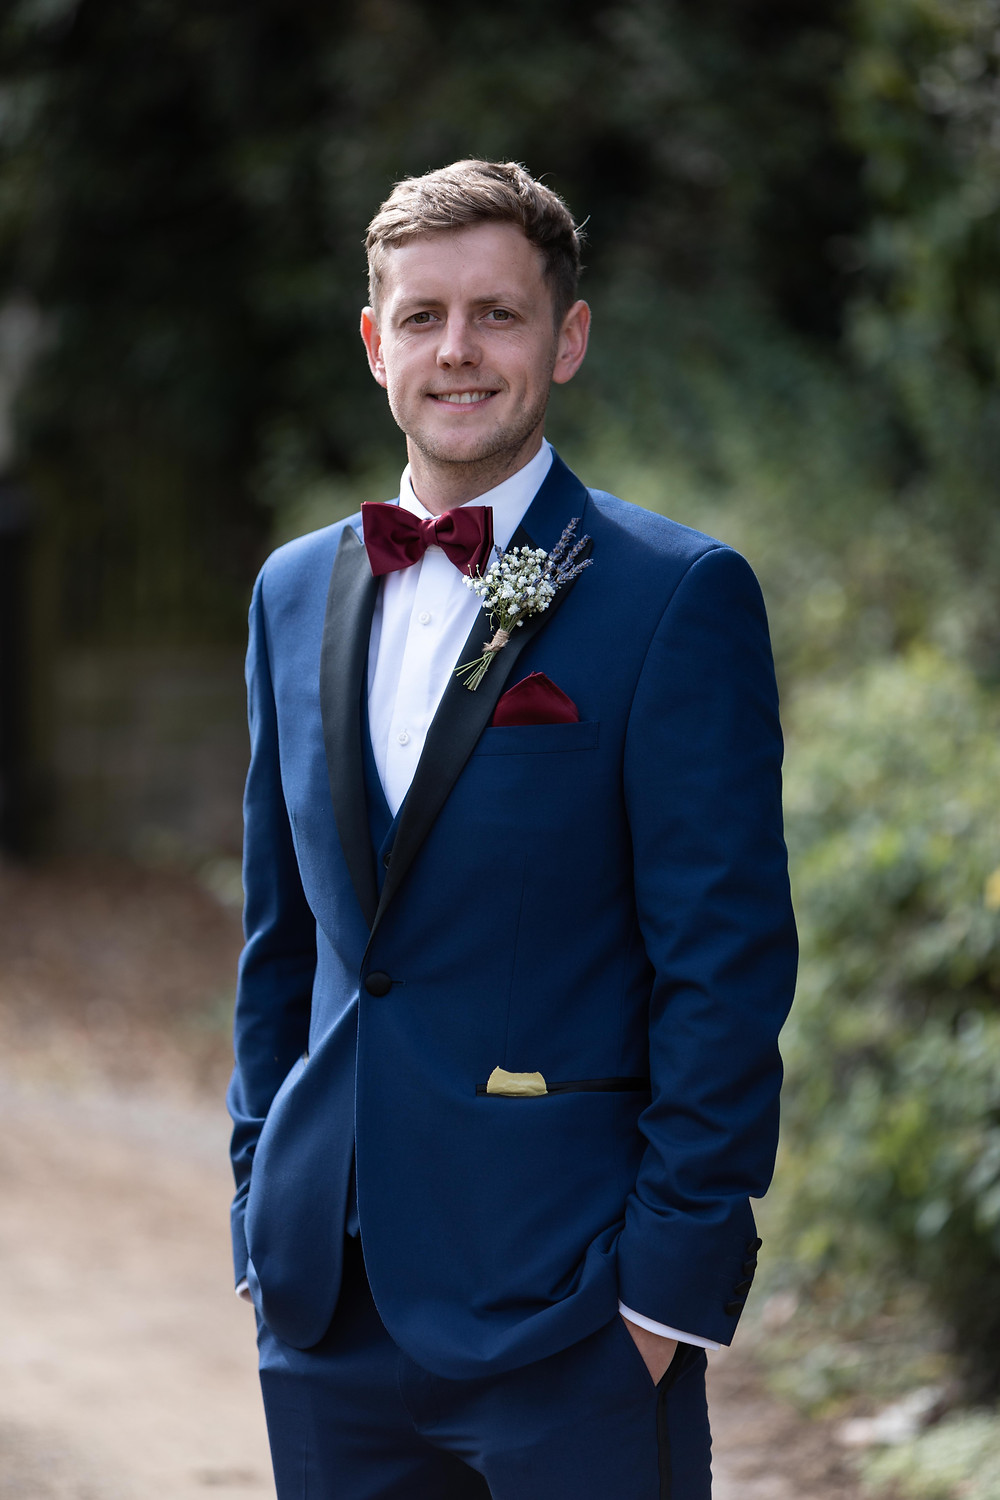 Wedding portrait of the groom smiling